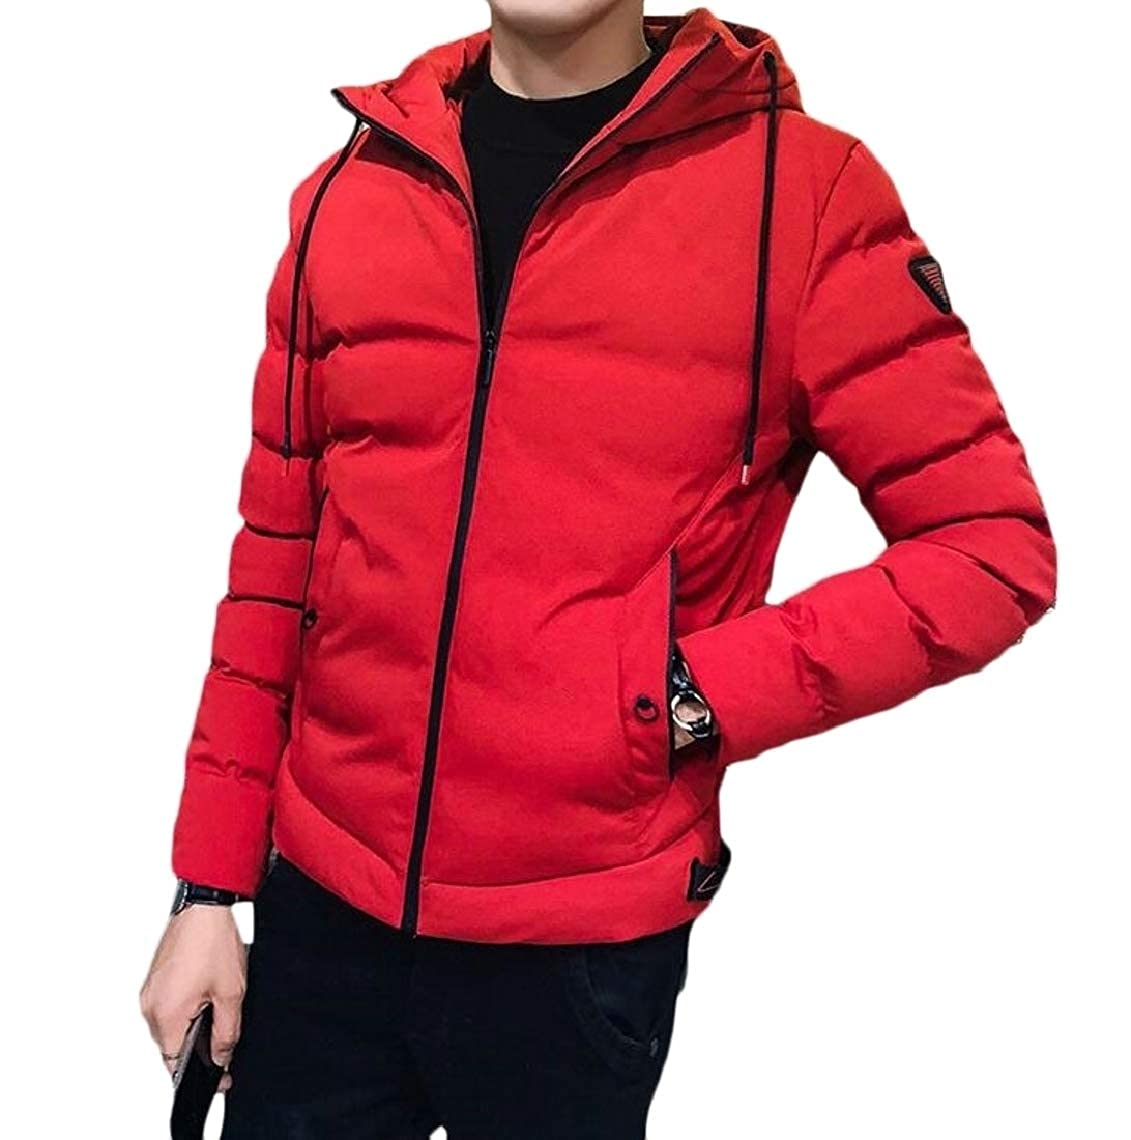 Jmwss QD Mens Plus Size Solid Hooded Warm Zip Front Quilted Jacket Coat Outerwear